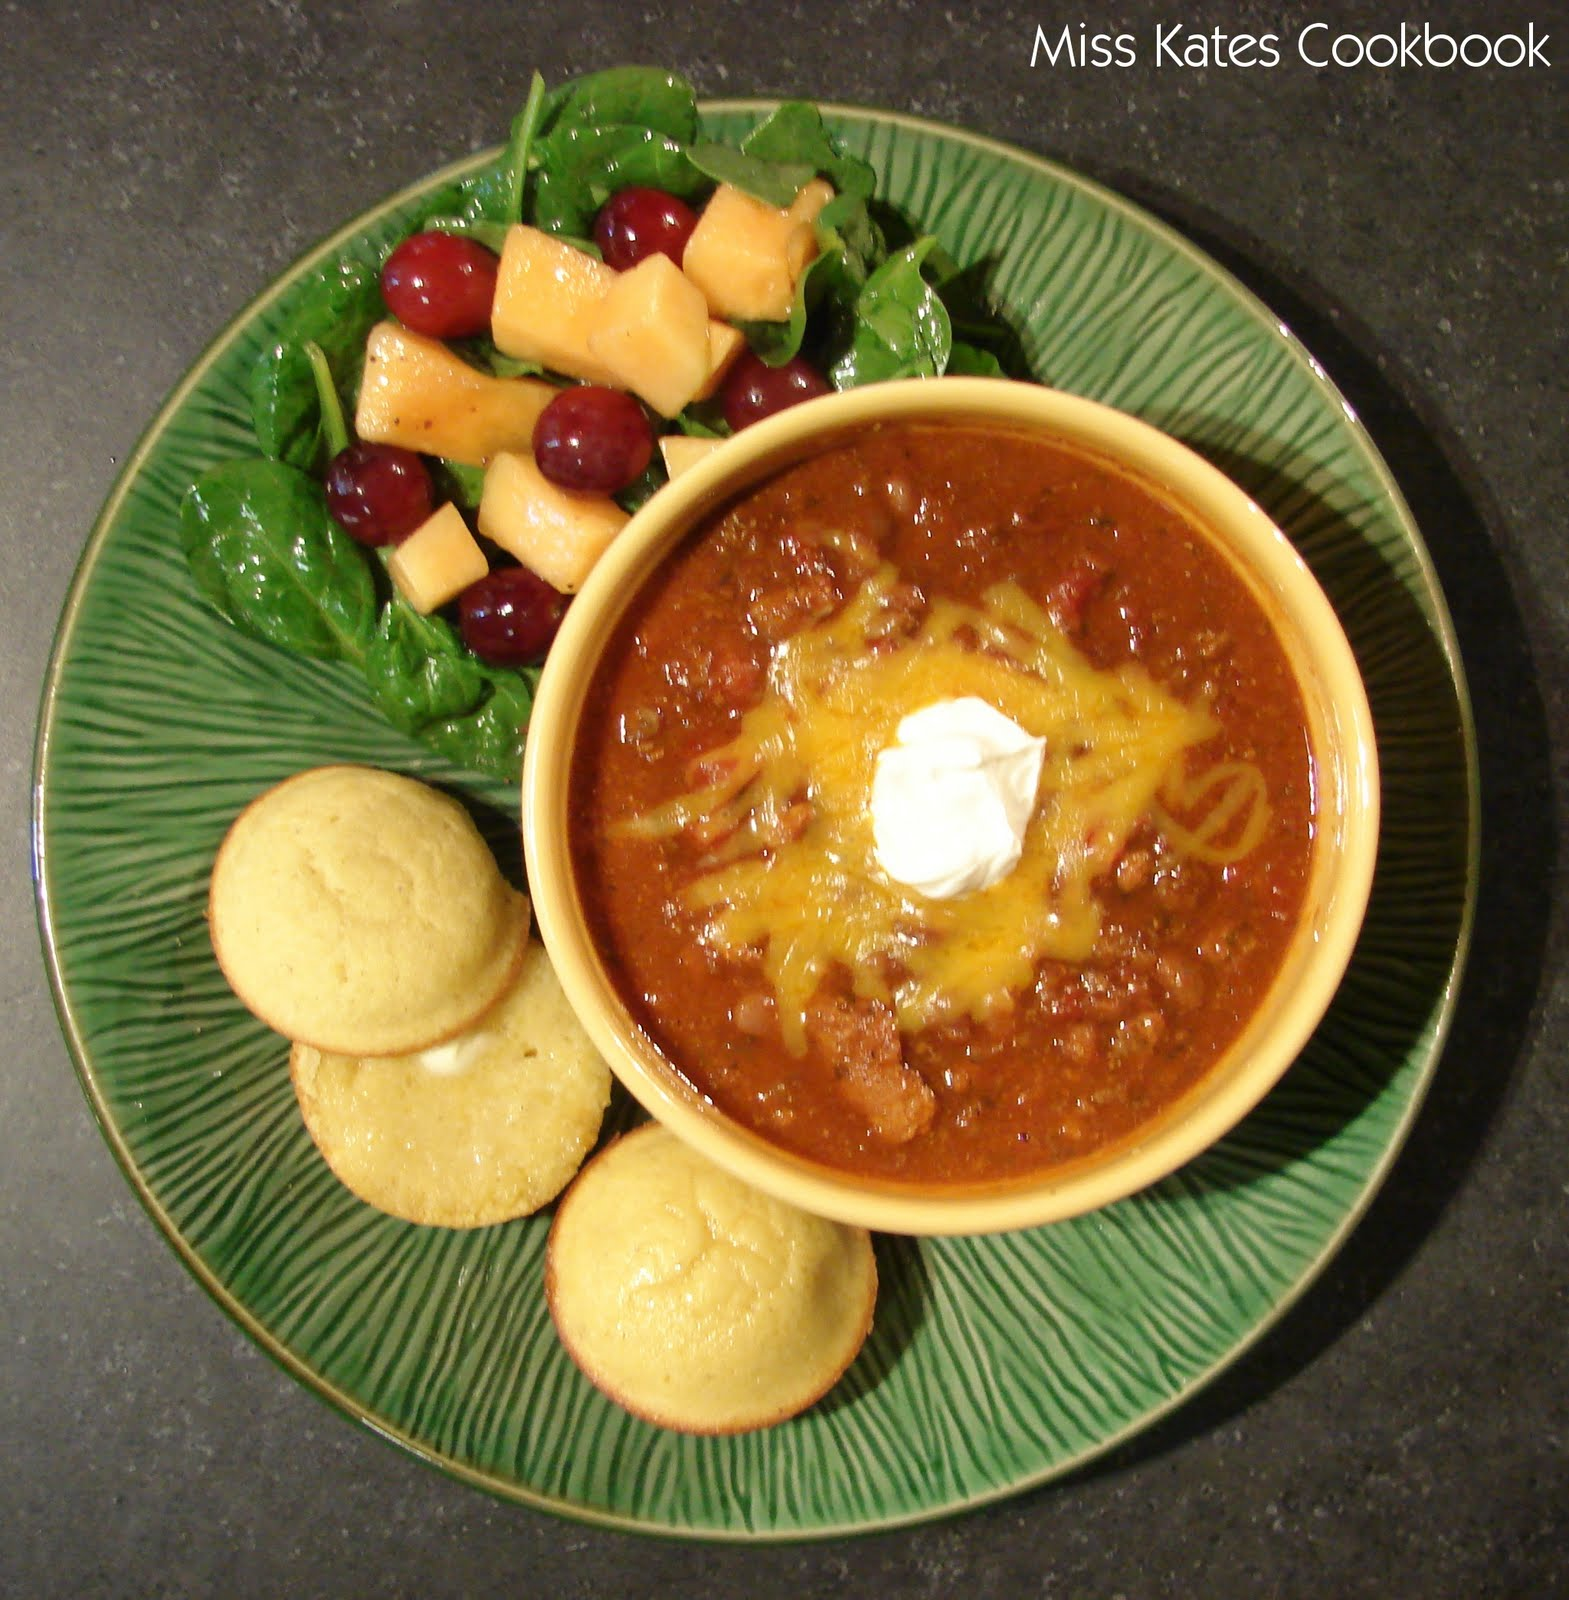 Miss Kate's Cookbook: Boilermaker Tailgate Chili